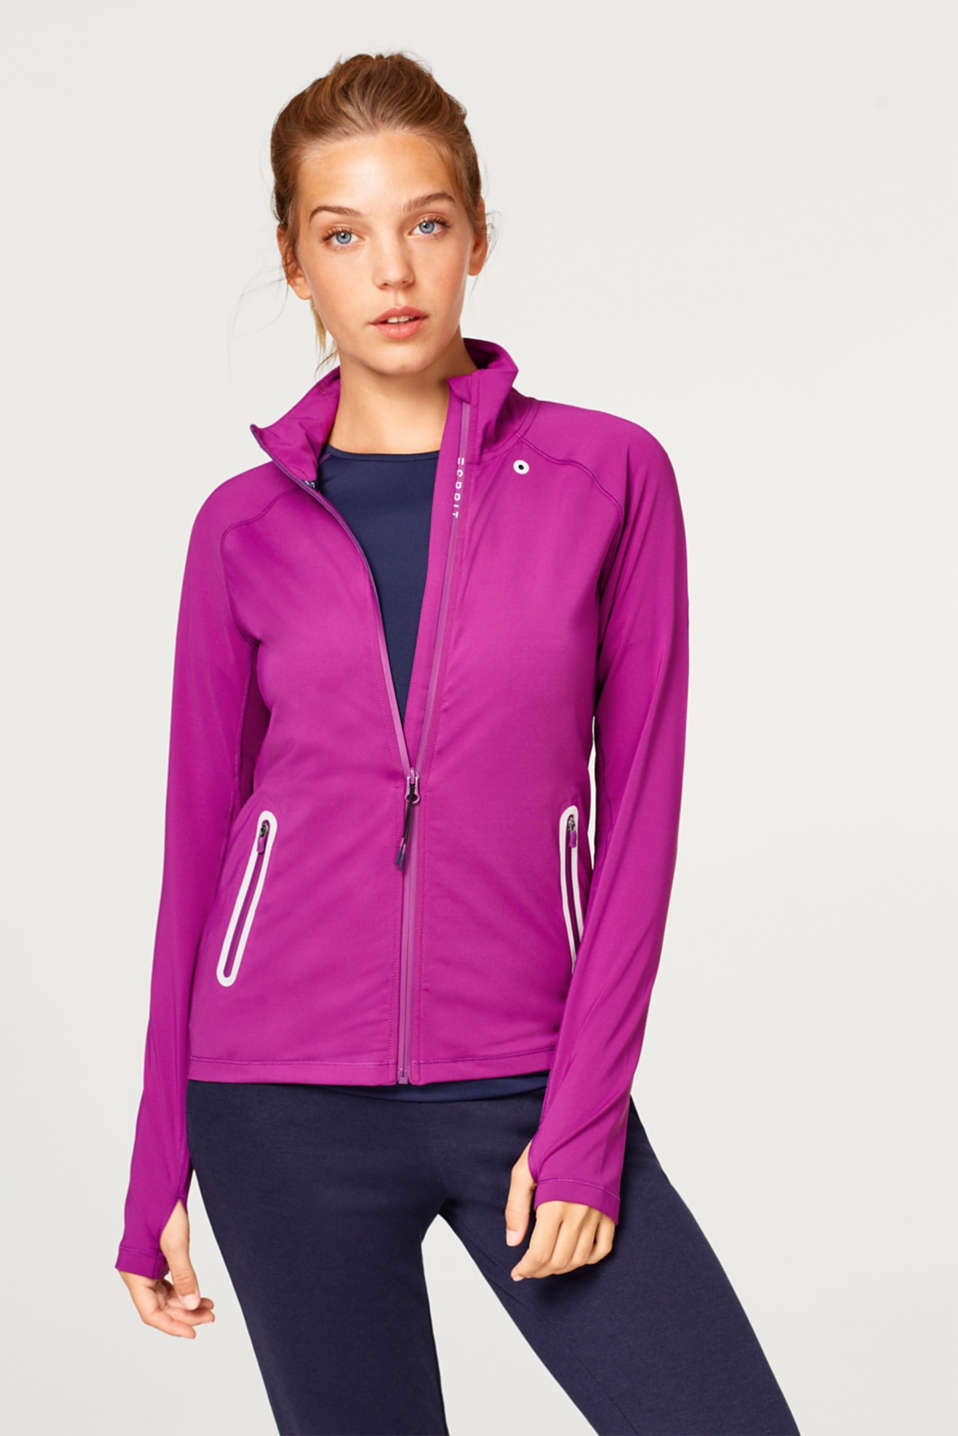 Esprit - Reflective jersey jacket, with E-DRY technology